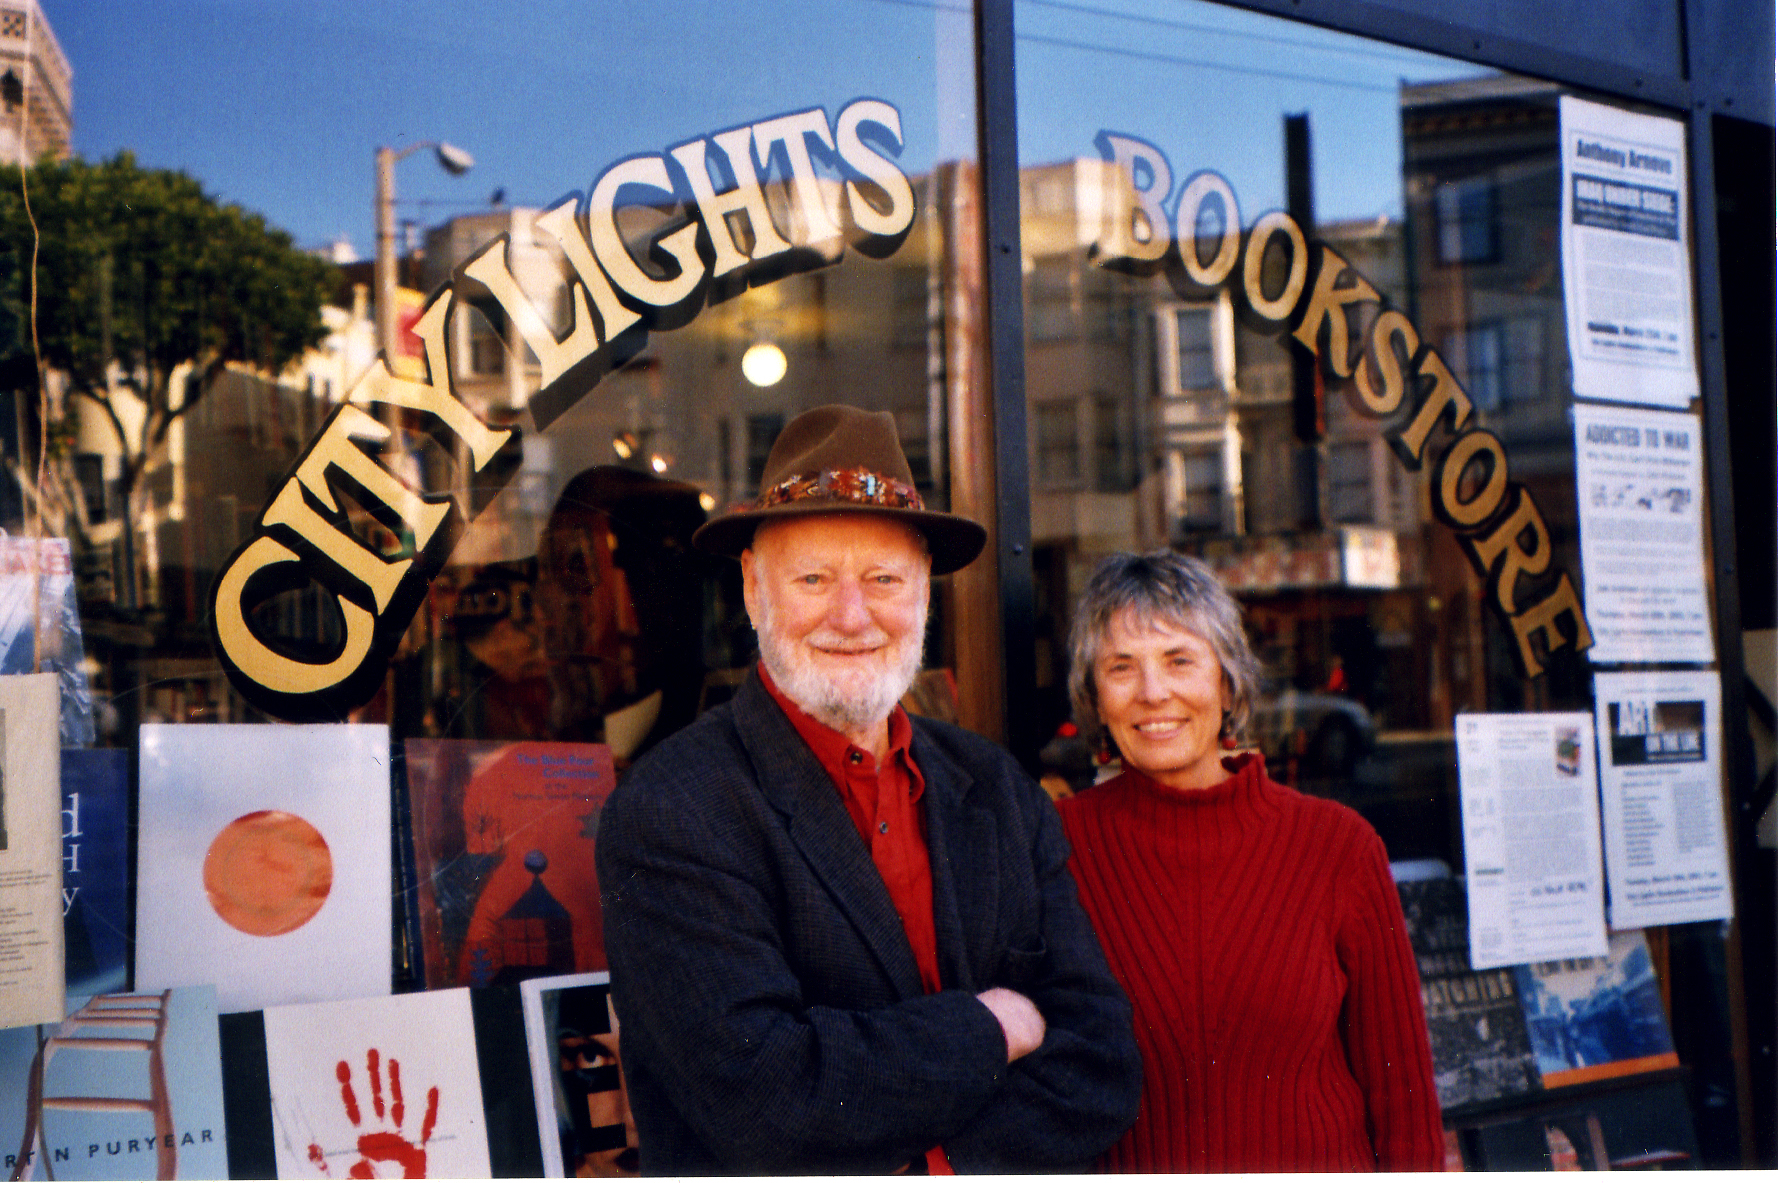 Lawrence Ferlinghetti and Nancy Peters posing together outside the store in 2001